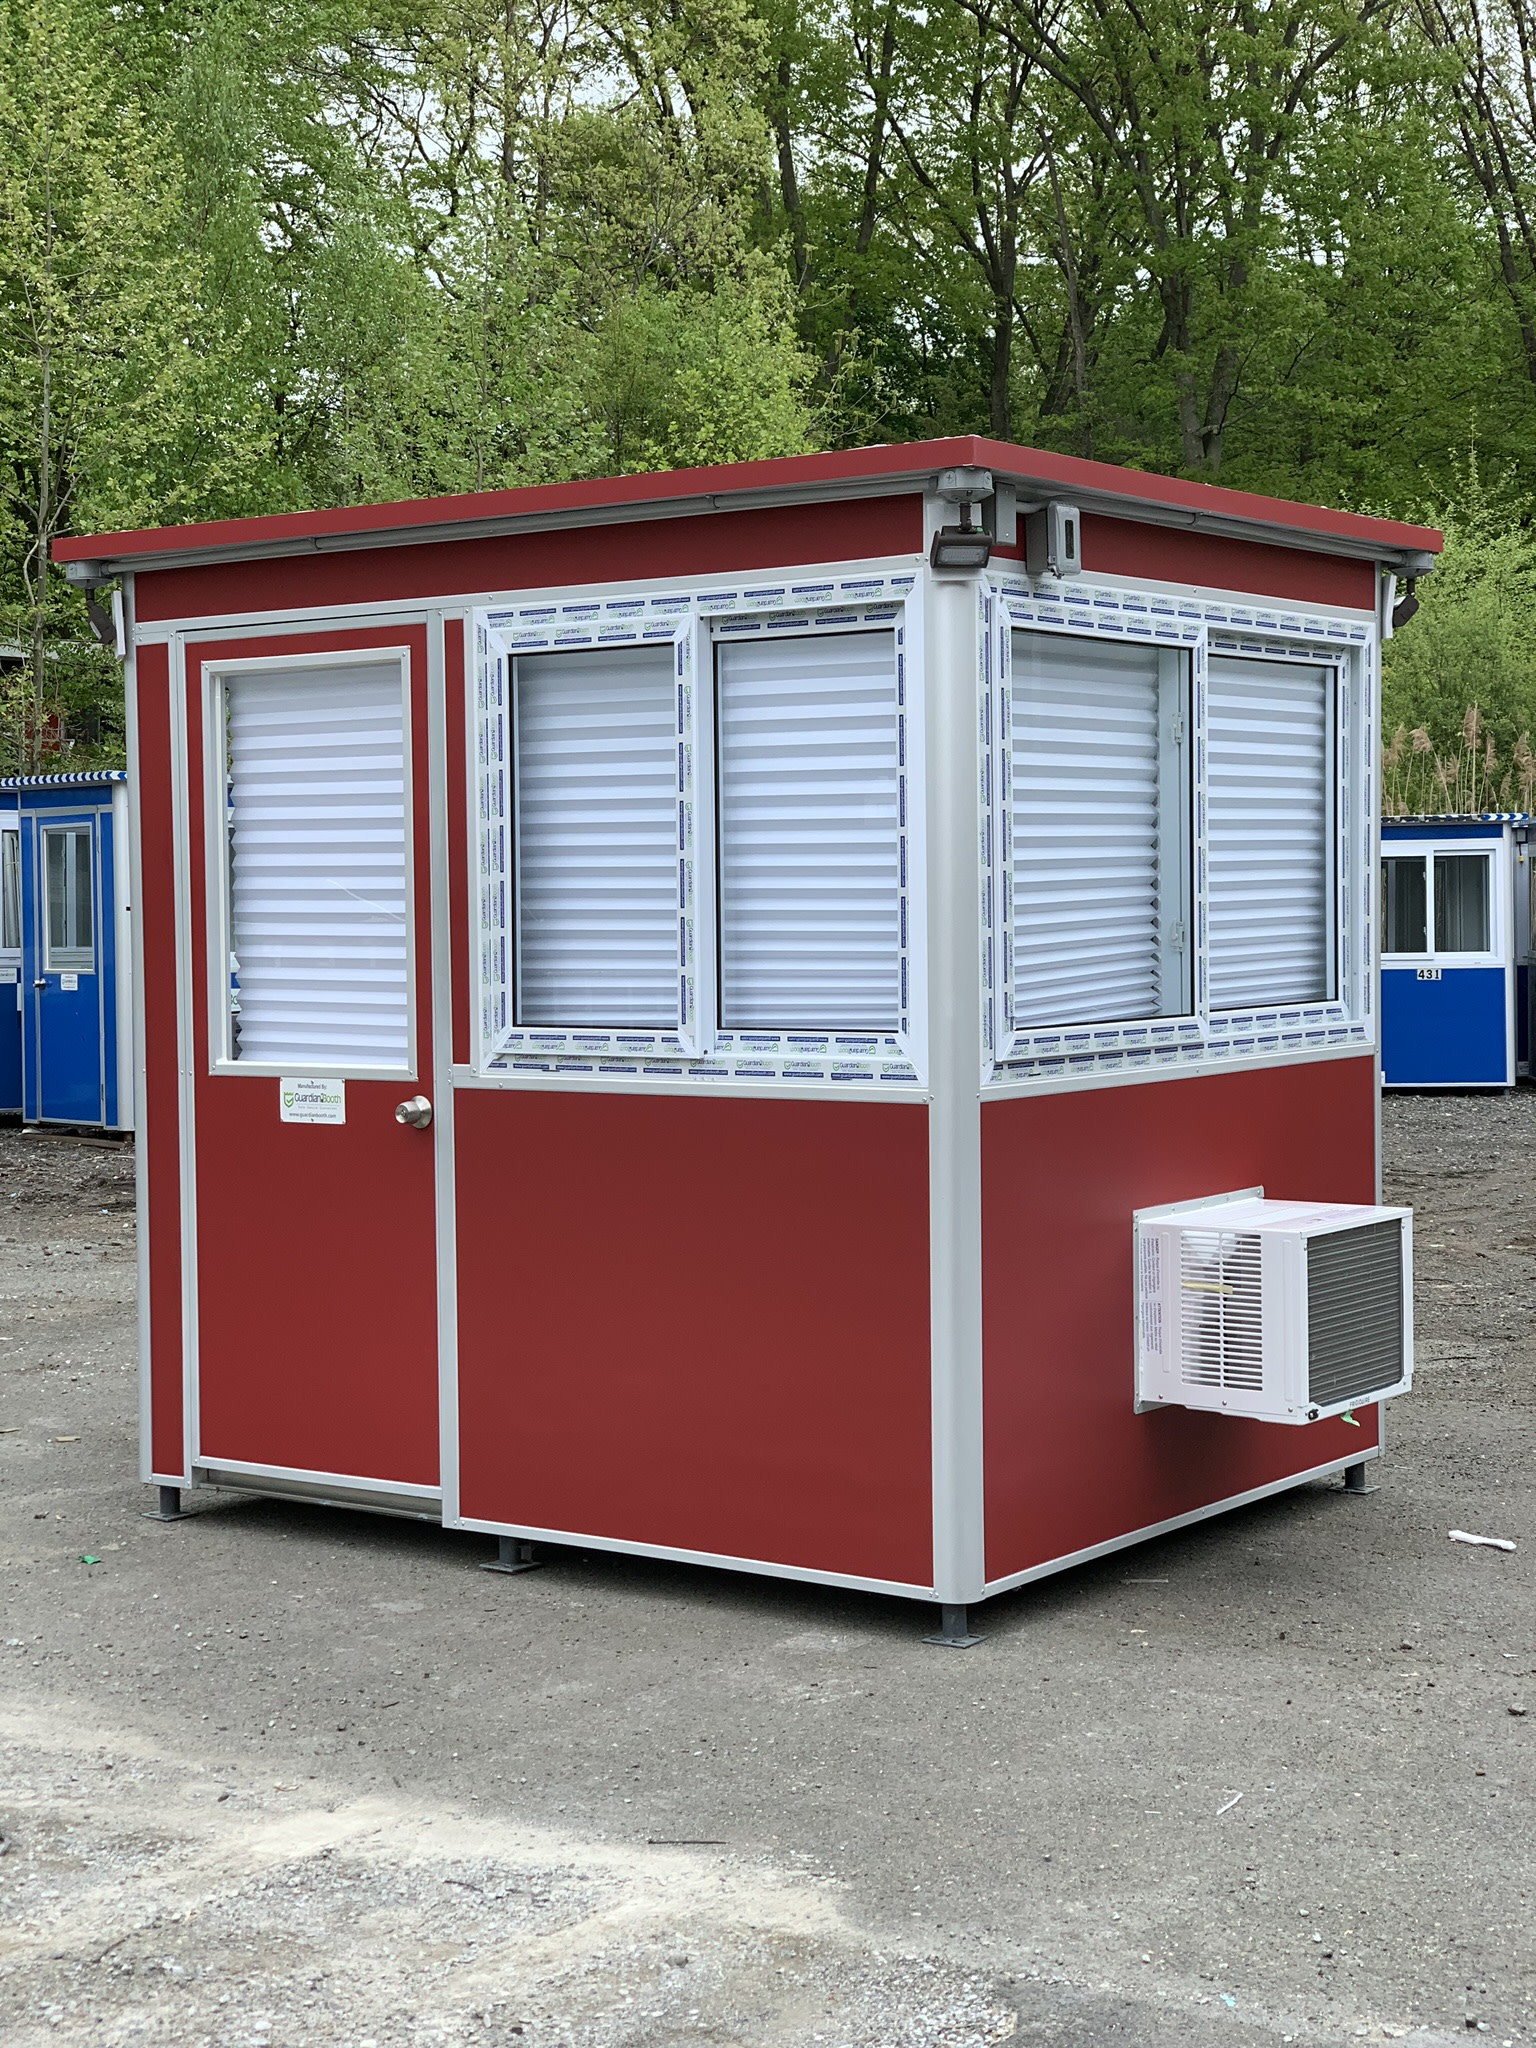 6x8 Entrance Booth in Oklahoma City, Ok with Air Conditioner and Sliding Windows and Outside LED Spotlights and Exterior Duplex Ethernet Port and Phone Line